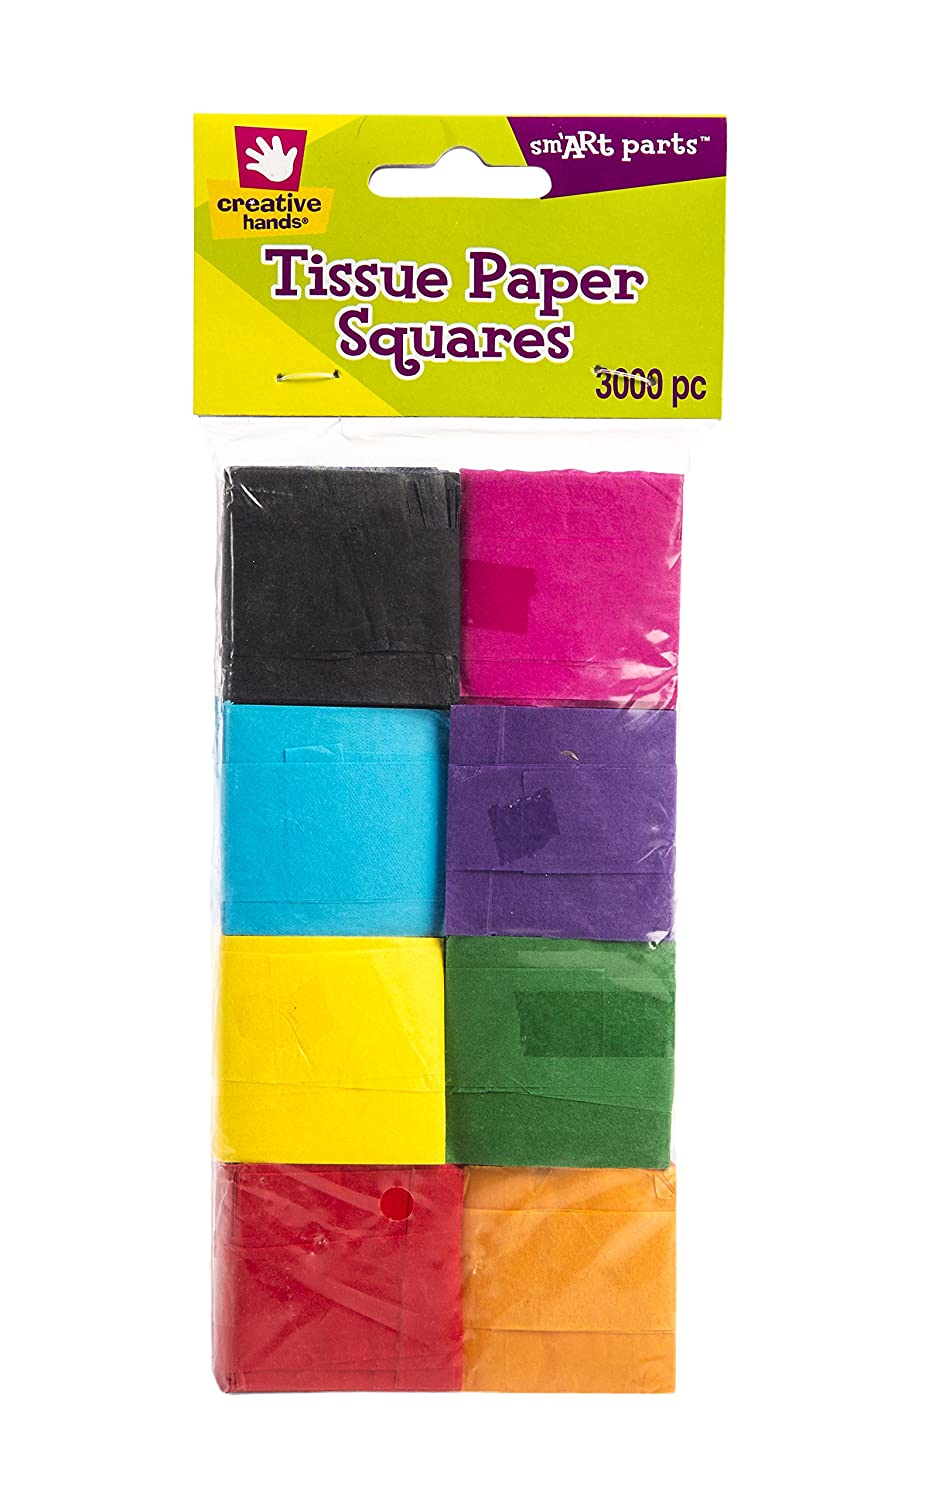 Fiber Craft Tissue Paper Pack, Multi Colored Notions - In Network 108859E